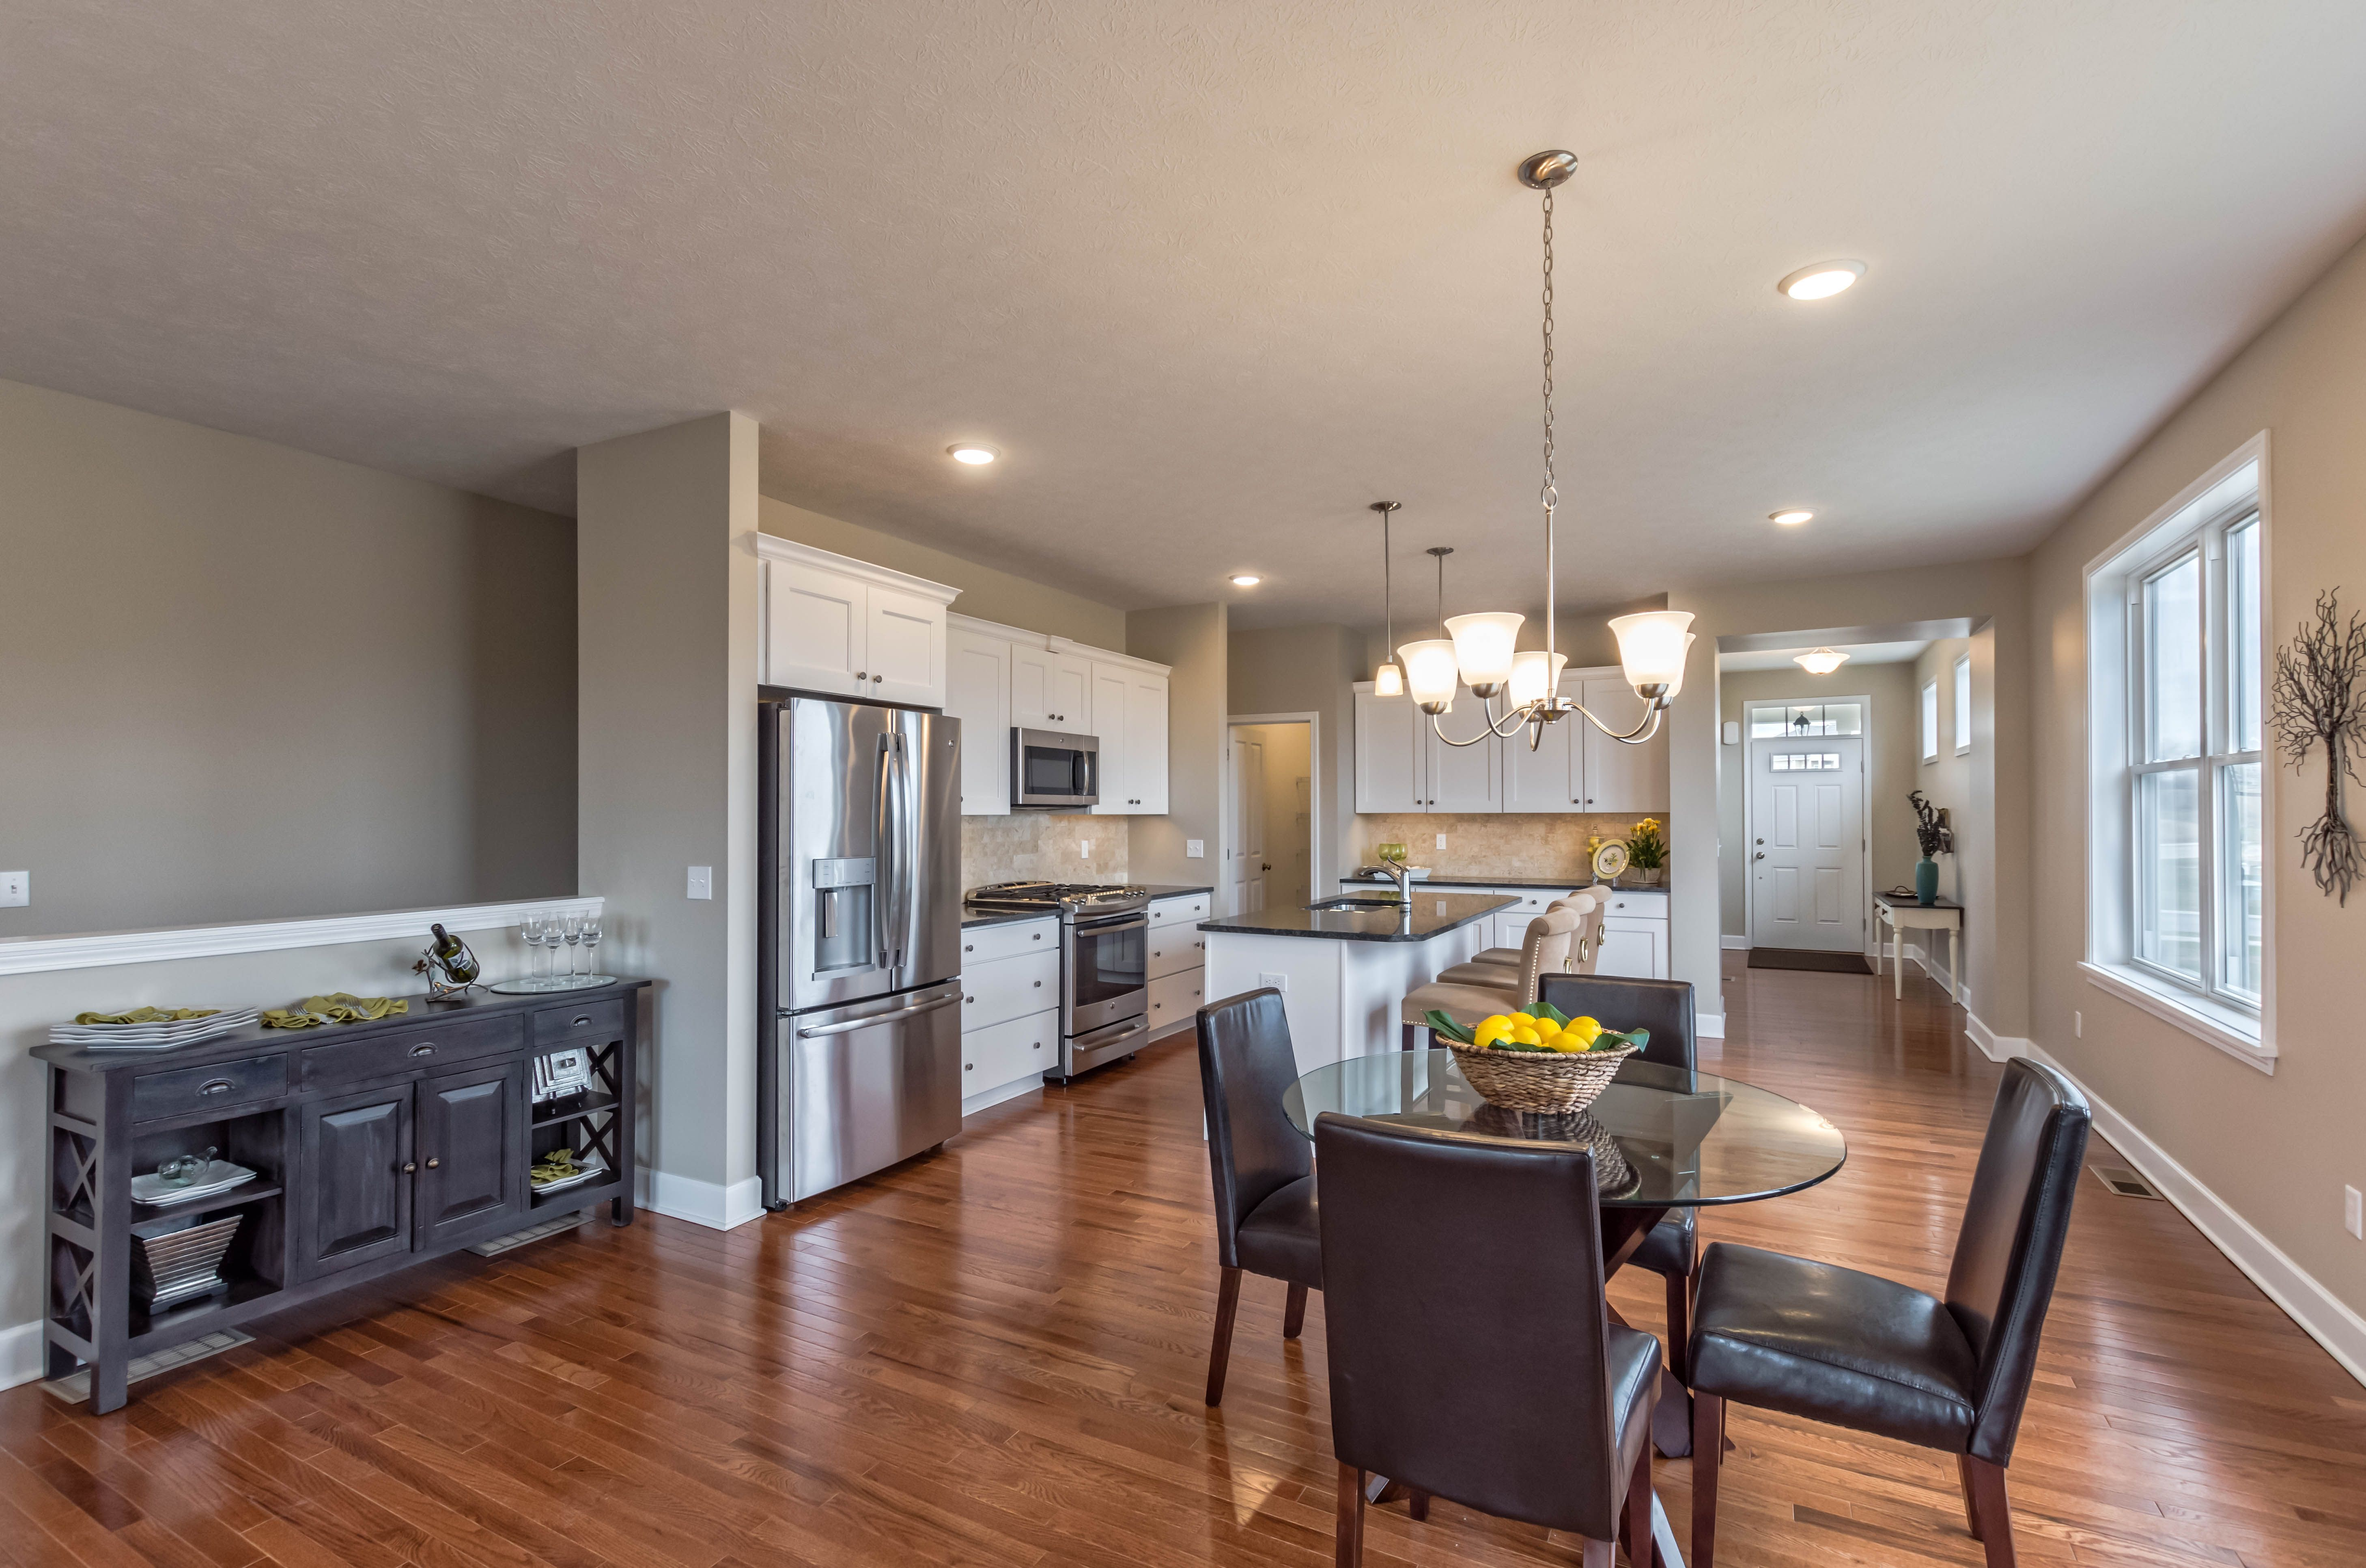 Kitchen featured in The Kingston By Riedman Homes in Elmira, NY